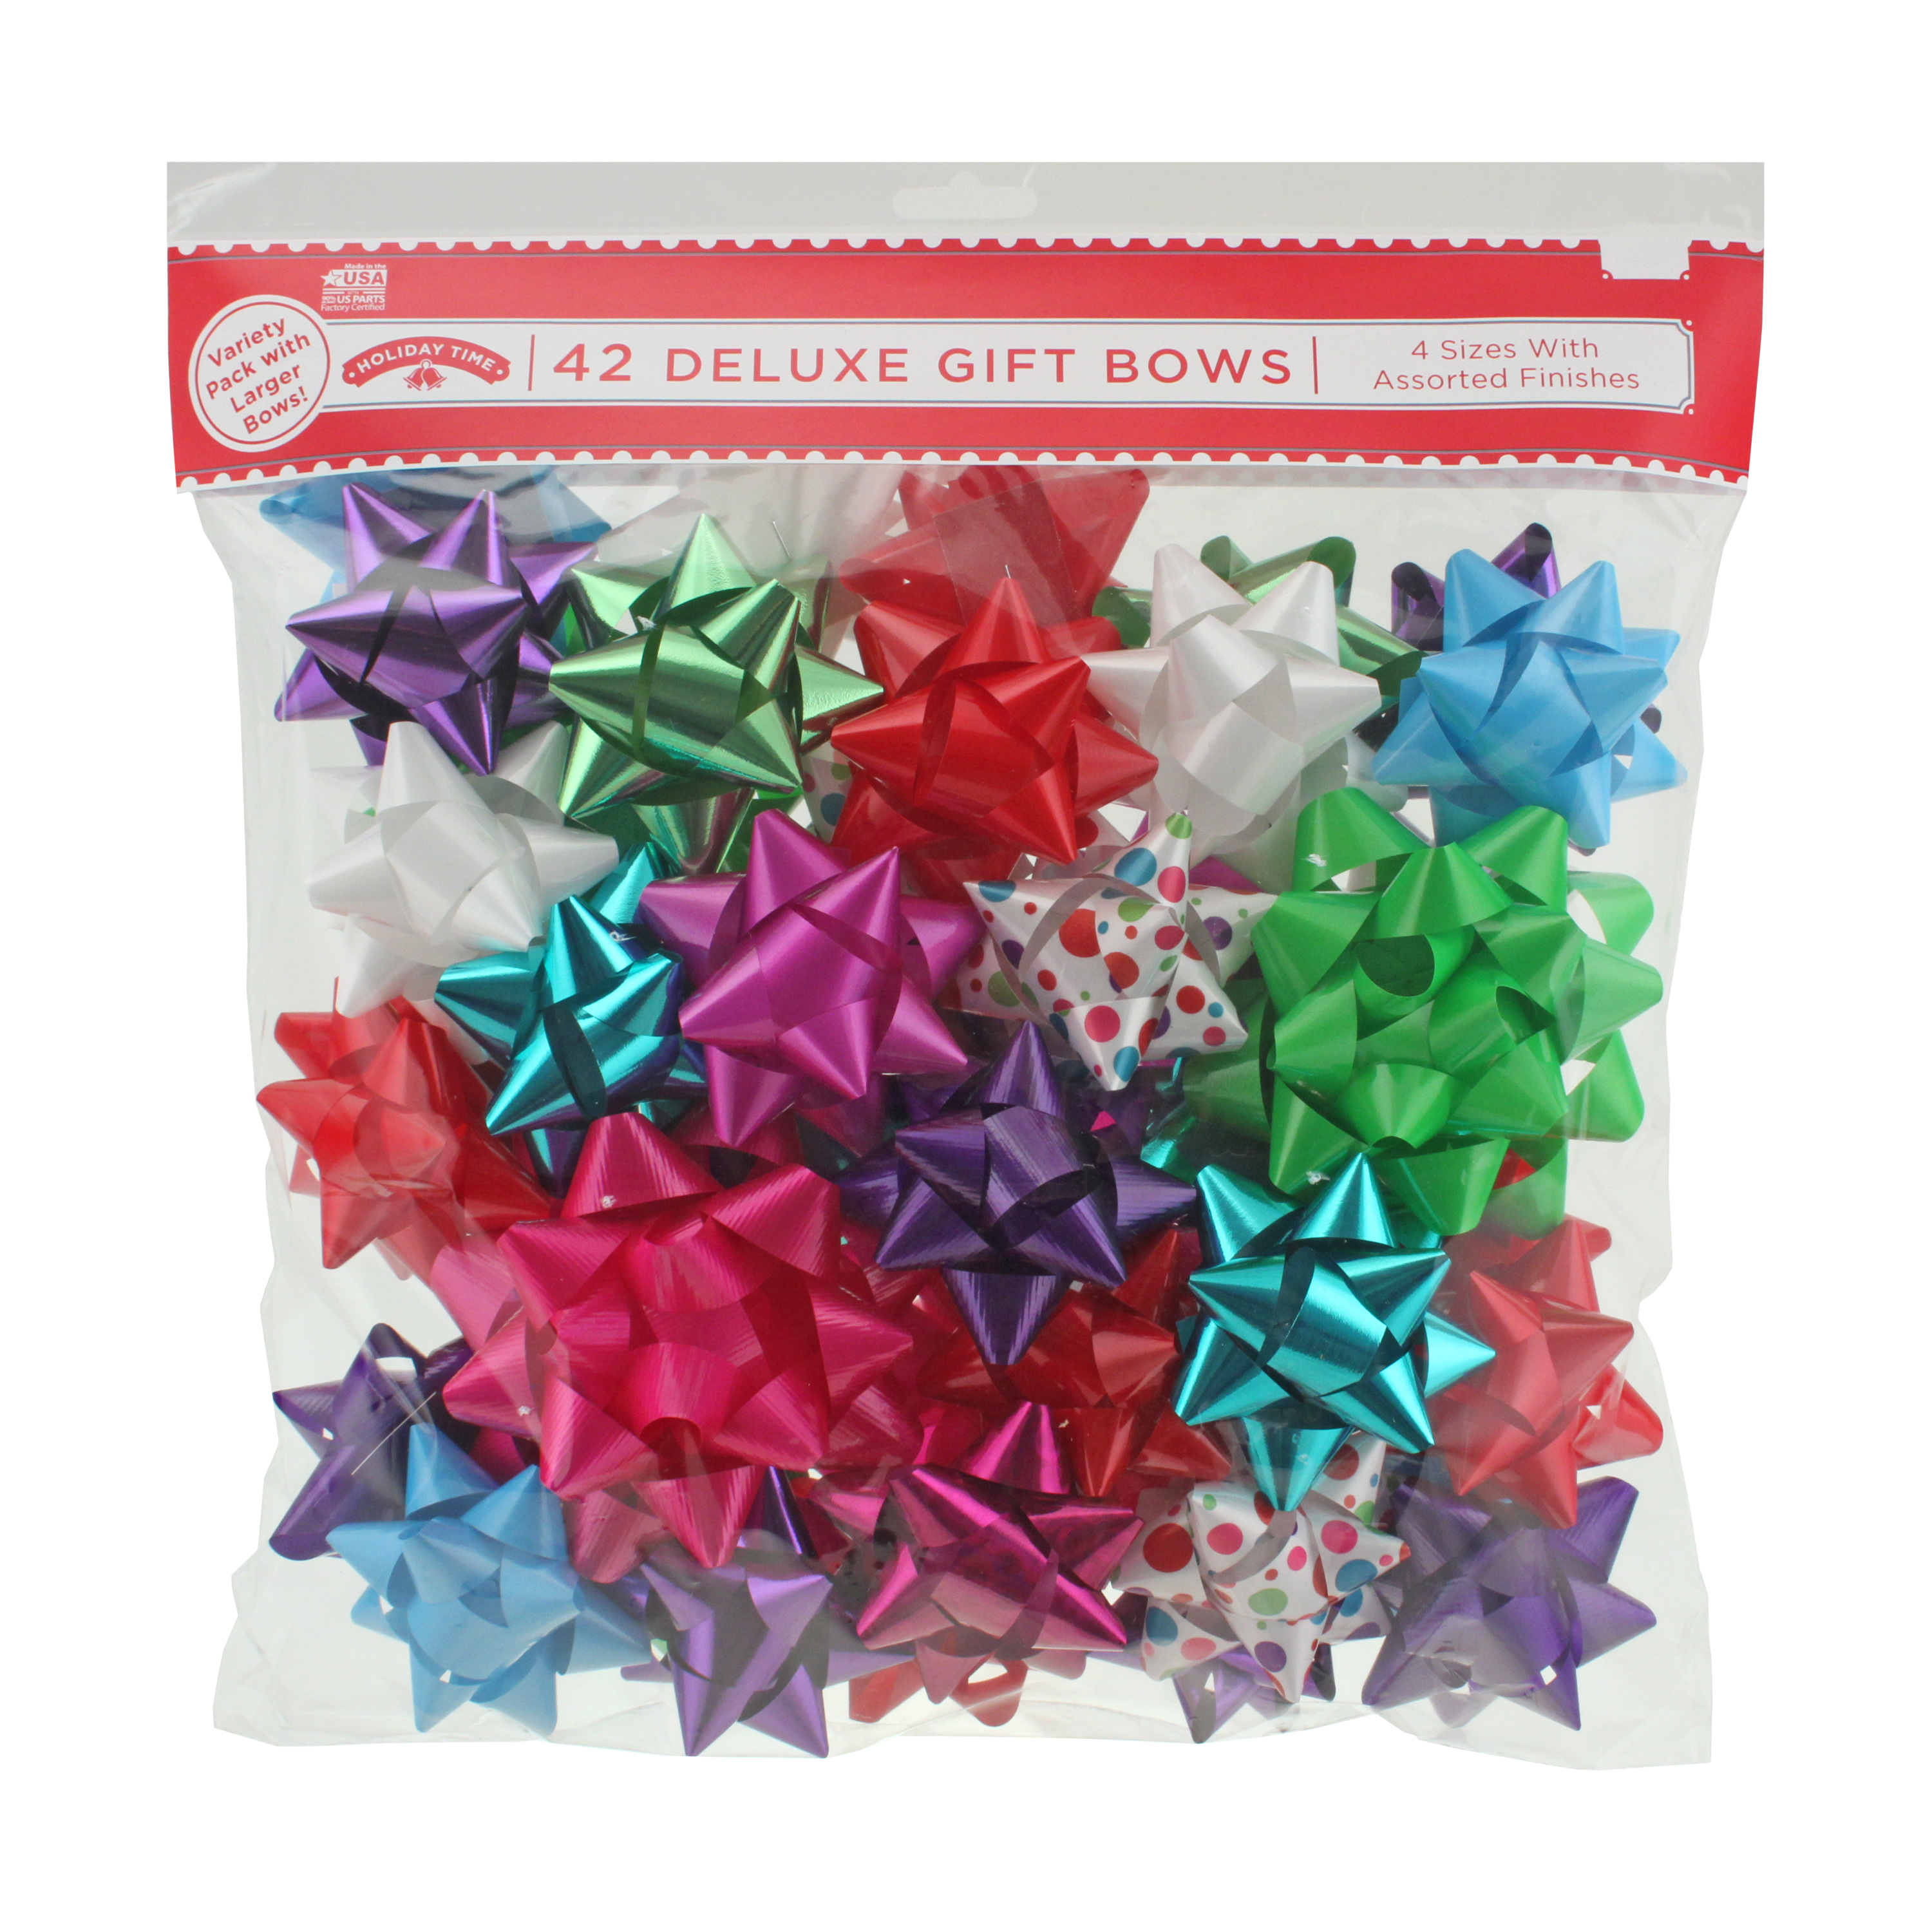 42 COUNT GIFT BOW ASSORTMENT - BRIGHTS